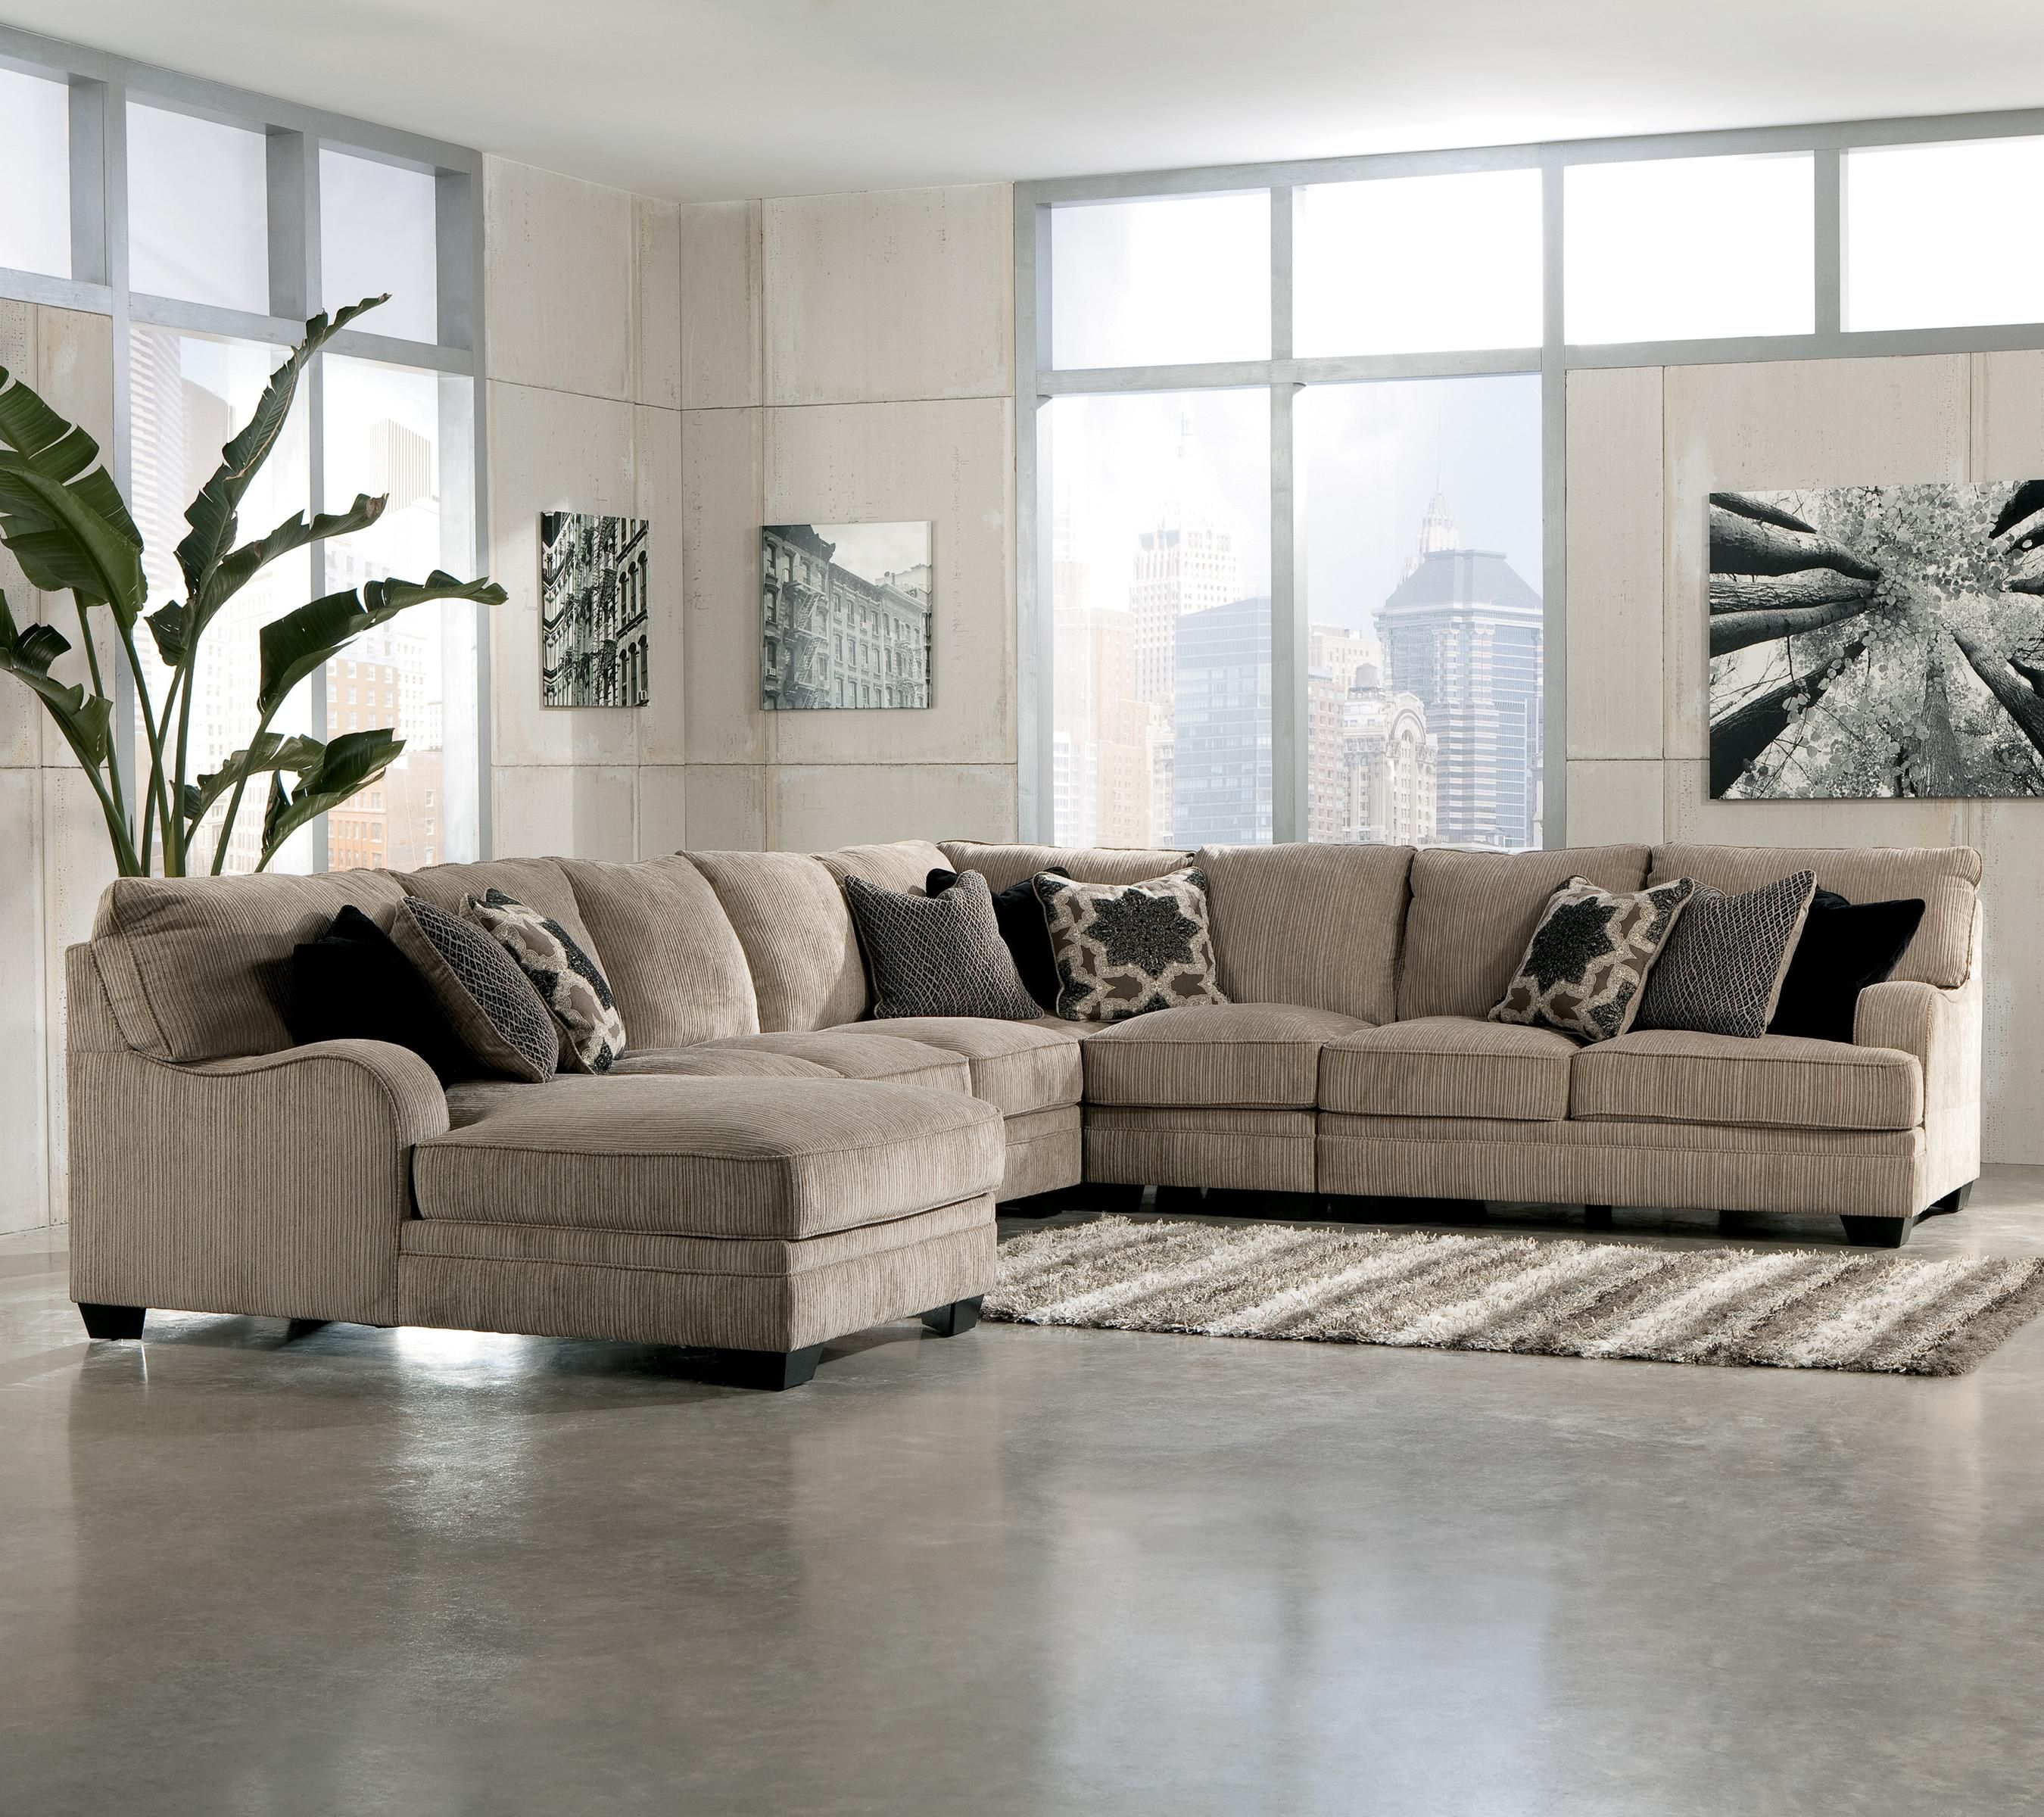 Katisha - Platinum 5-Piece Sectional Sofa with Left Chaise by Signature Design by Ashley : ashley sectional with chaise - Sectionals, Sofas & Couches